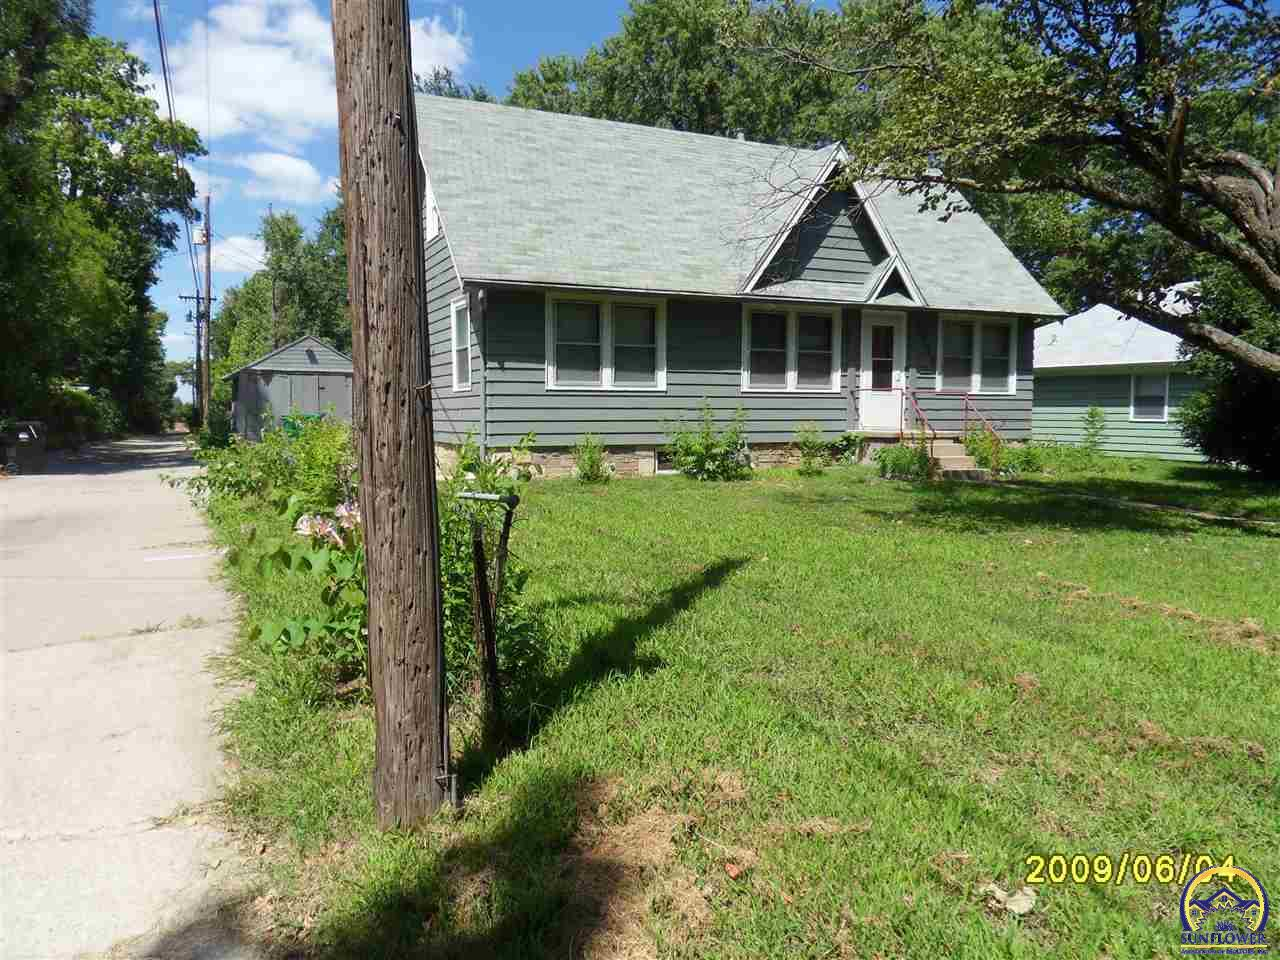 Photo of 3720 SW 9th St Topeka KS 66604